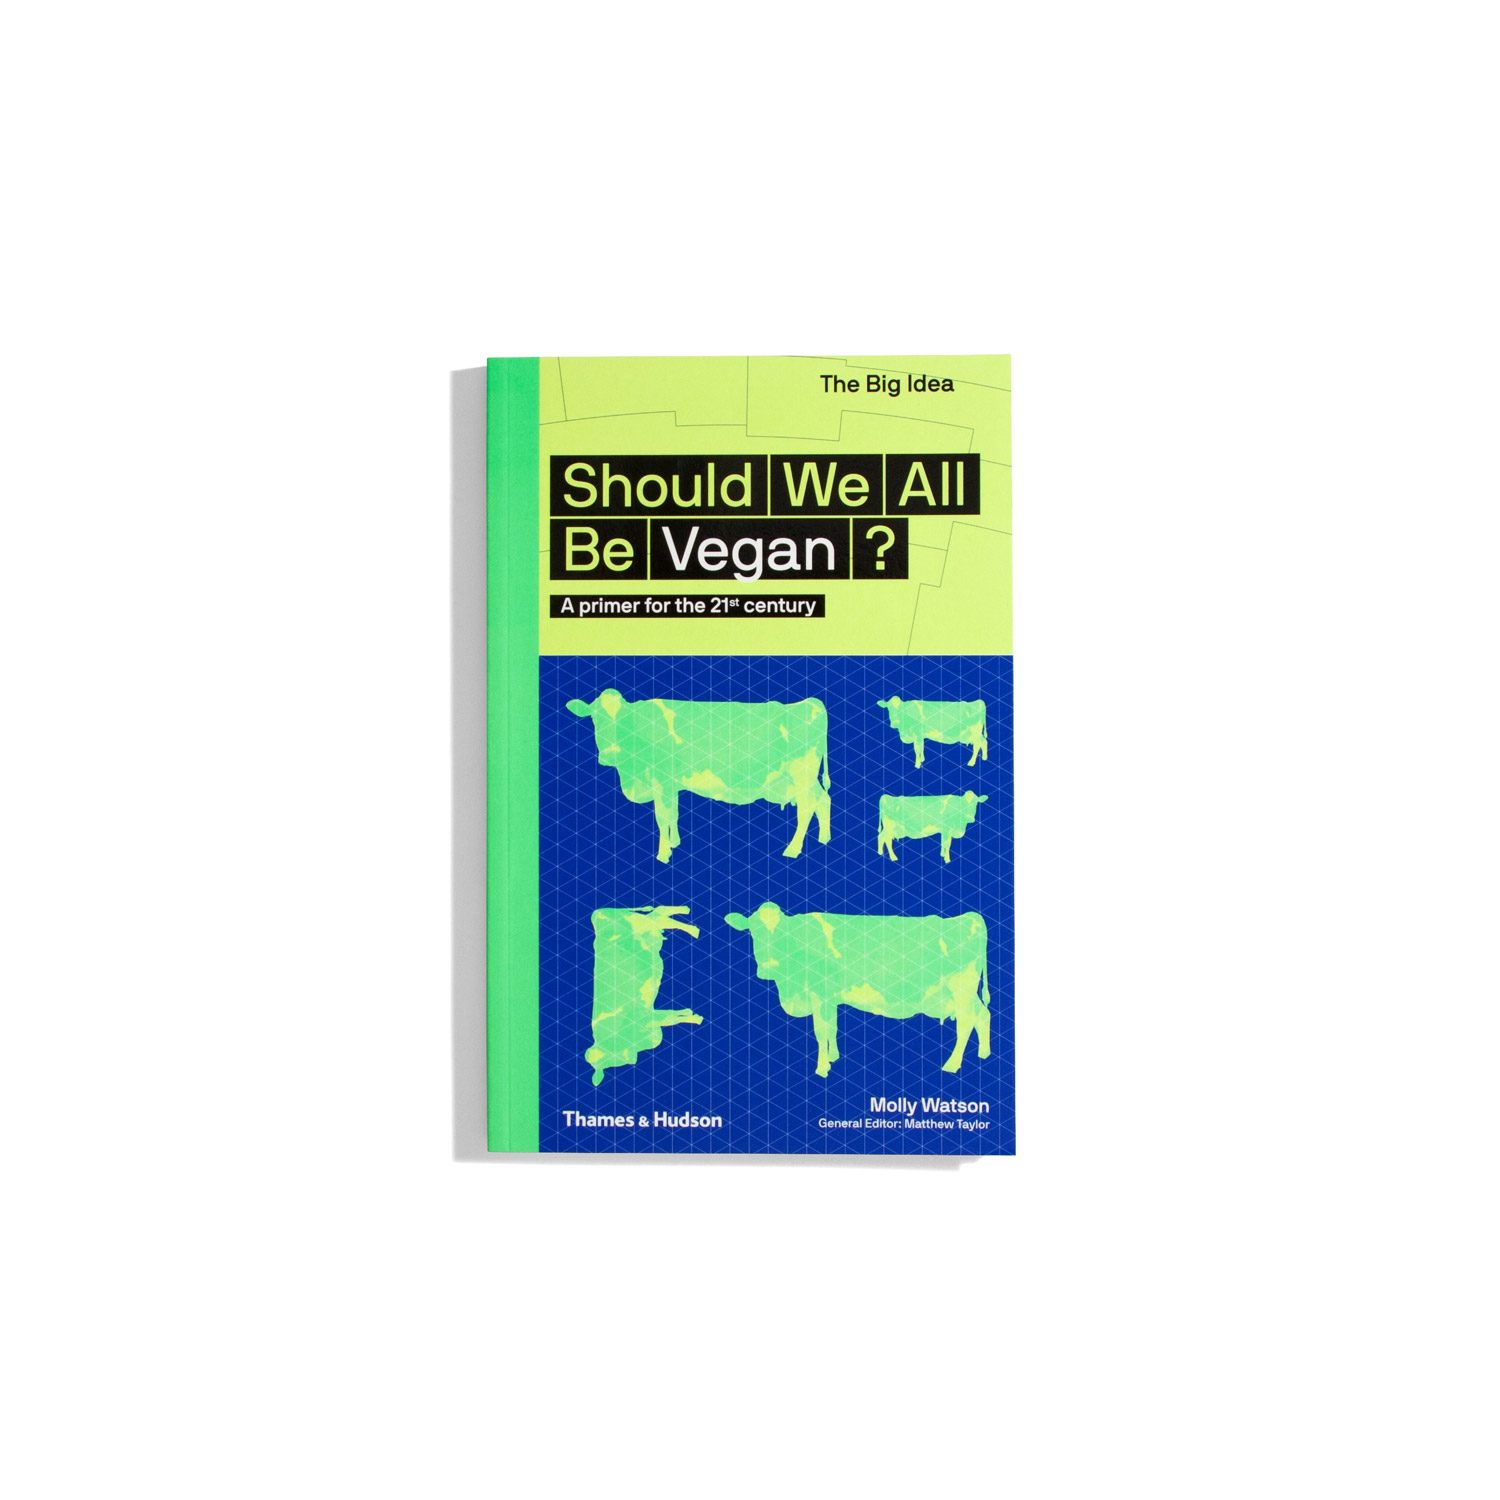 Should we all be vegan? - Molly Watson A primer for the 21st century (The Big Idea)